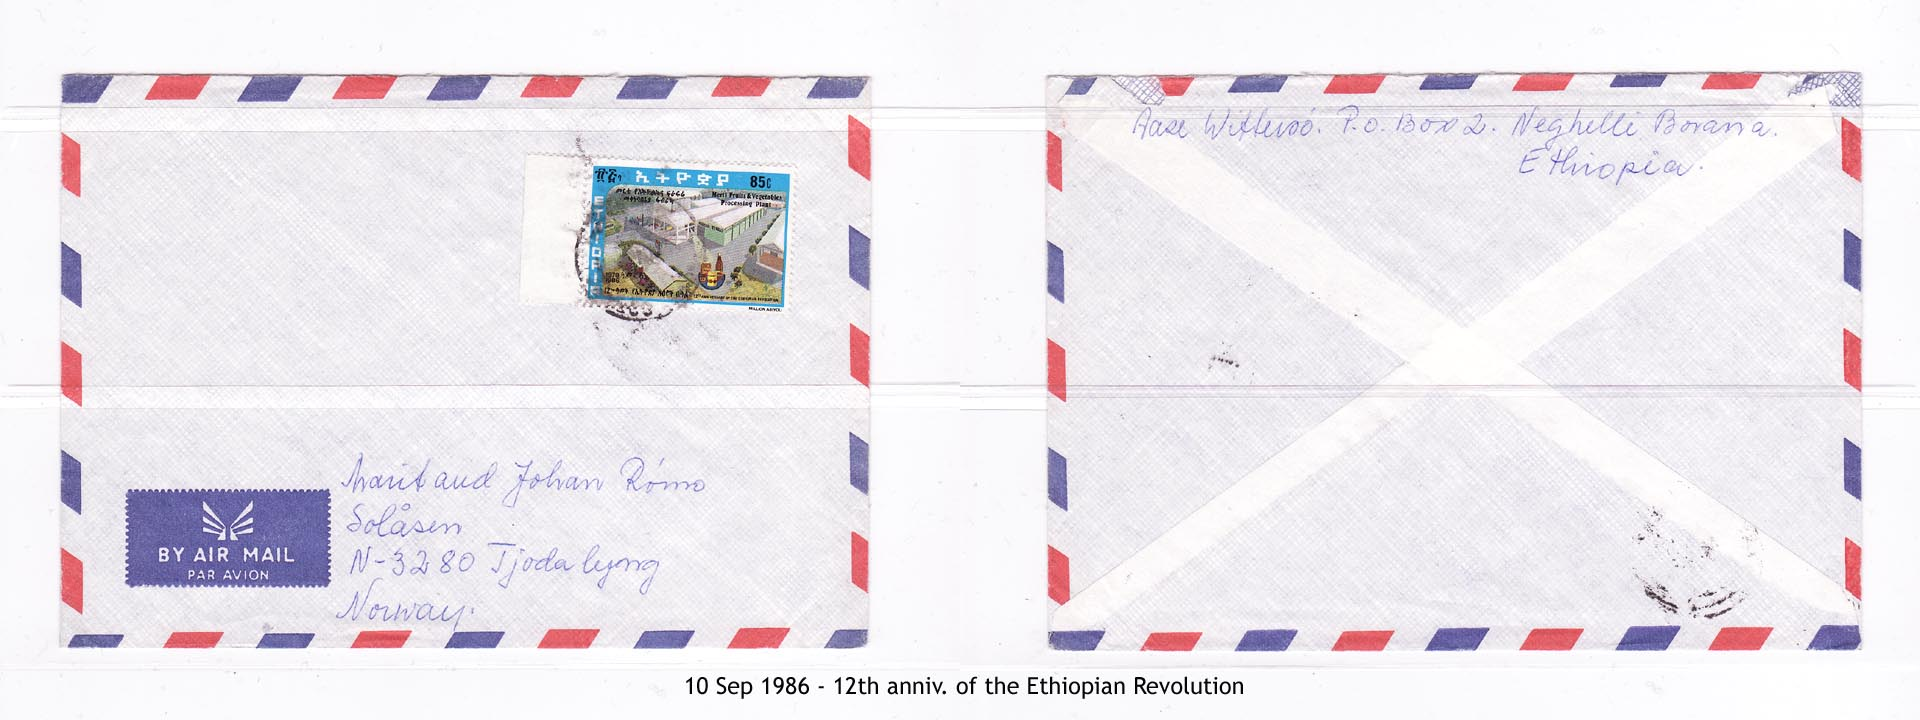 19860910 - 12th anniv. of the Ethiopian Revolution